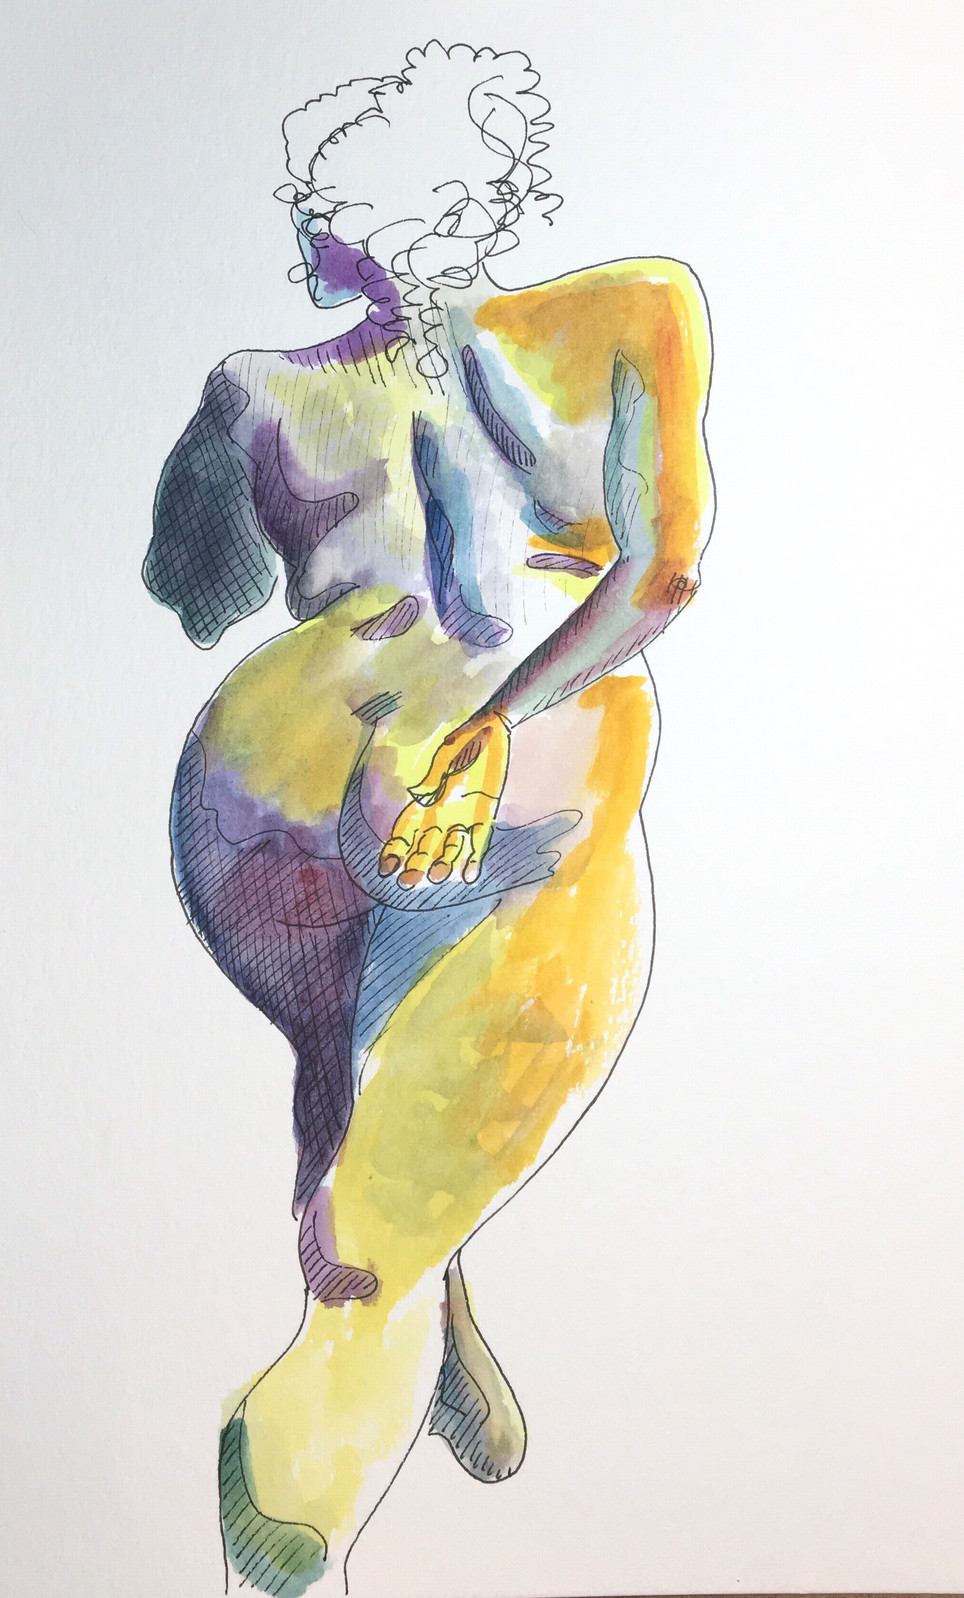 Added New Items to Online Store: Original Figure Drawings